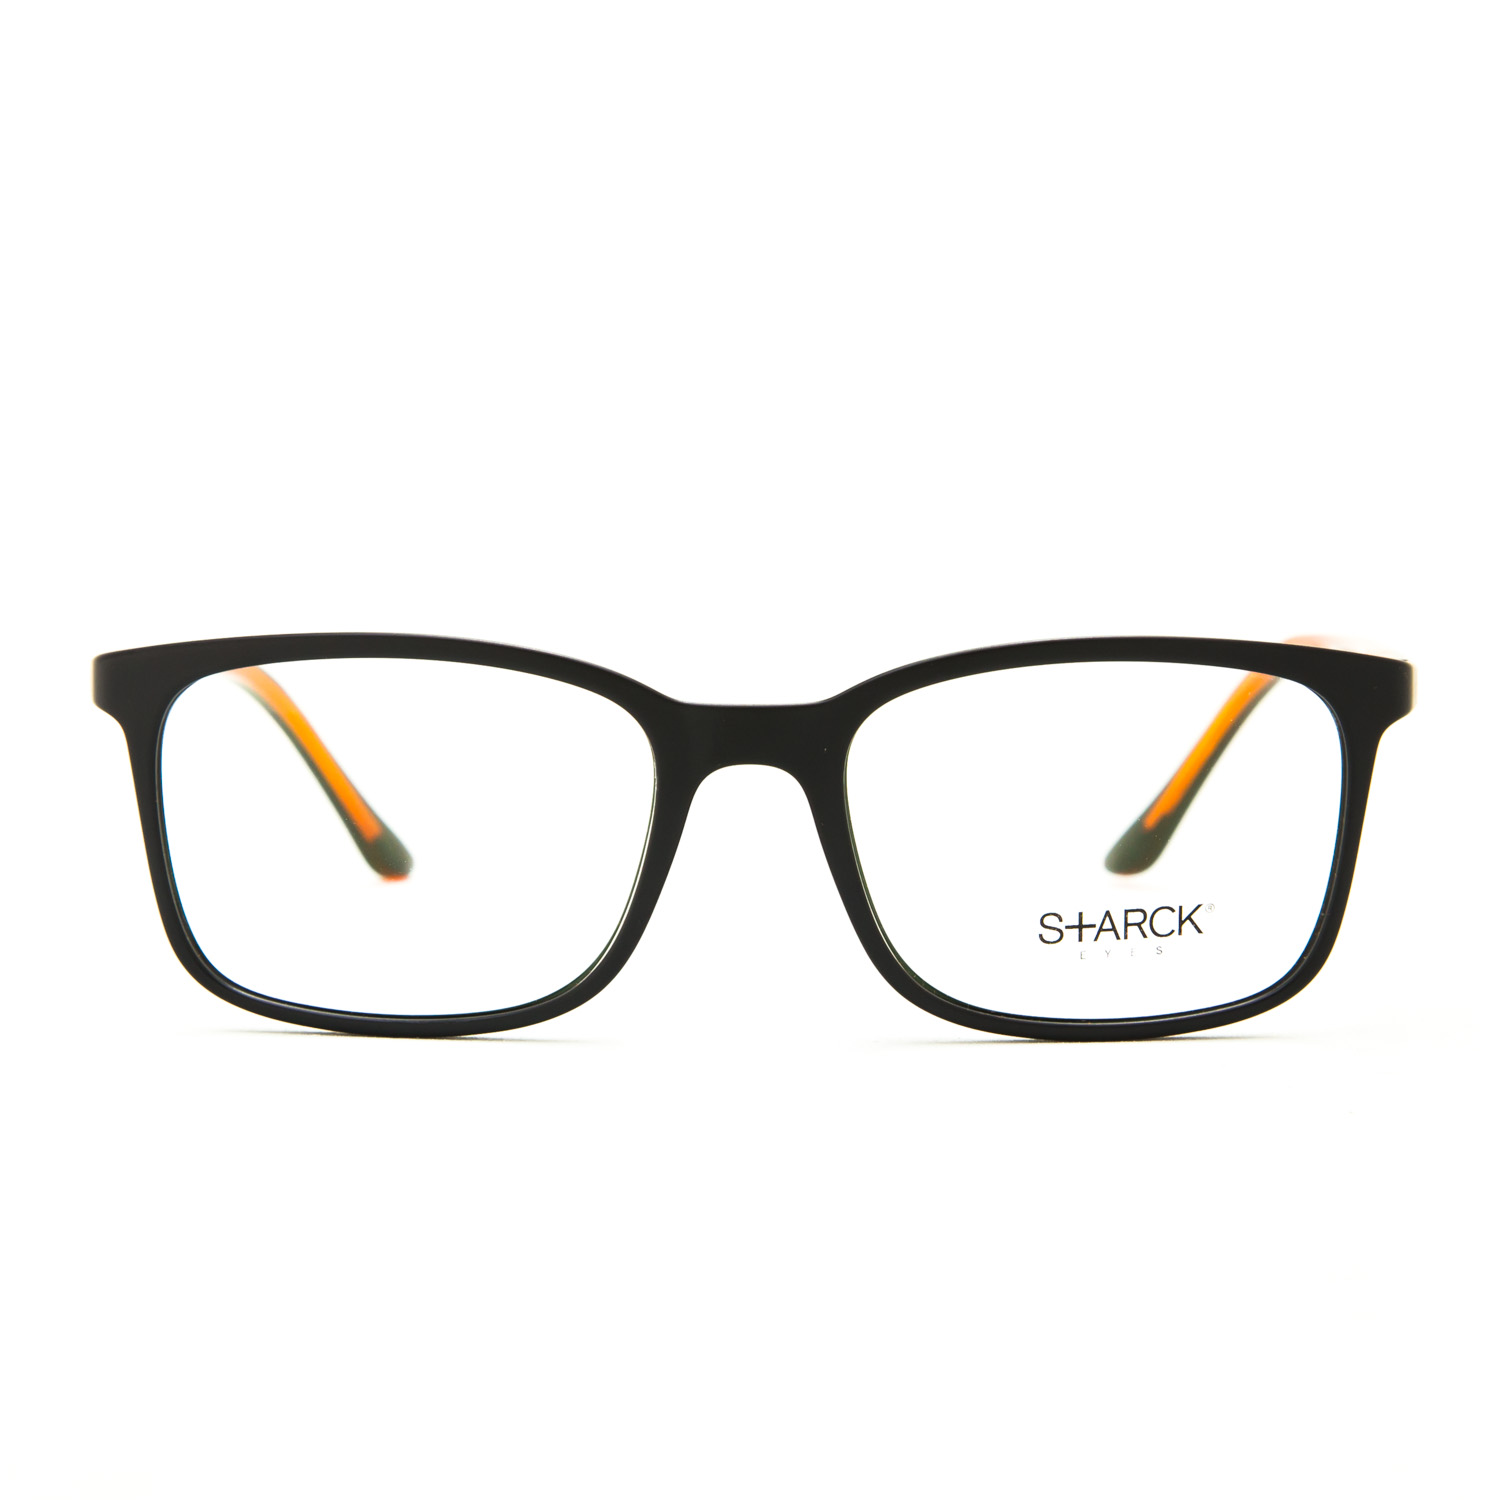 Starck Eyes Eyeglasses Sh Multicoloured Frame 51